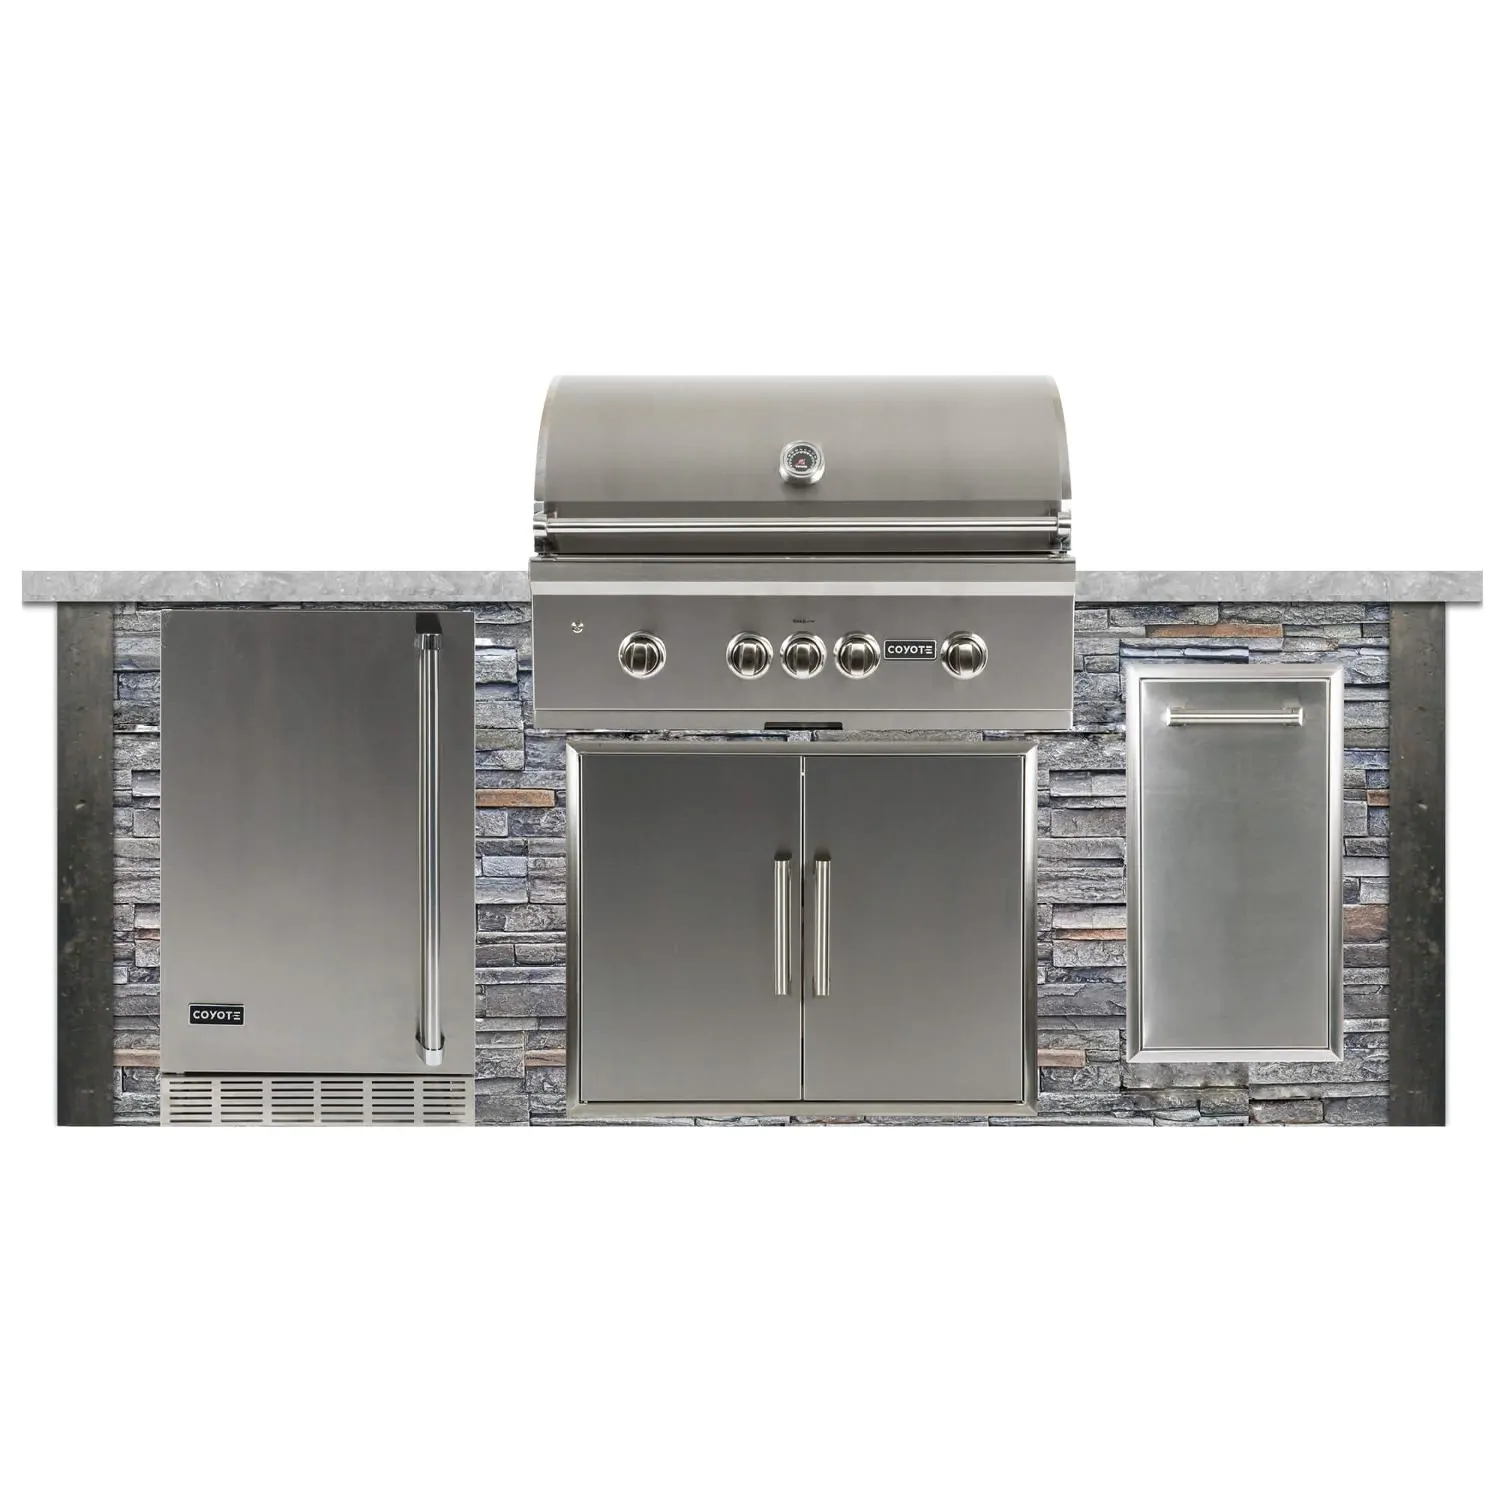 Coyote Ready-To-Assemble 8 Ft Outdoor Kitchen Island With 36-Inch S-Series Natural Gas Grill (Ships As Propane With Conversion Fittings) - Stacked Stone/Stone Gray - RTAC-G8-SG-C2SL36NG